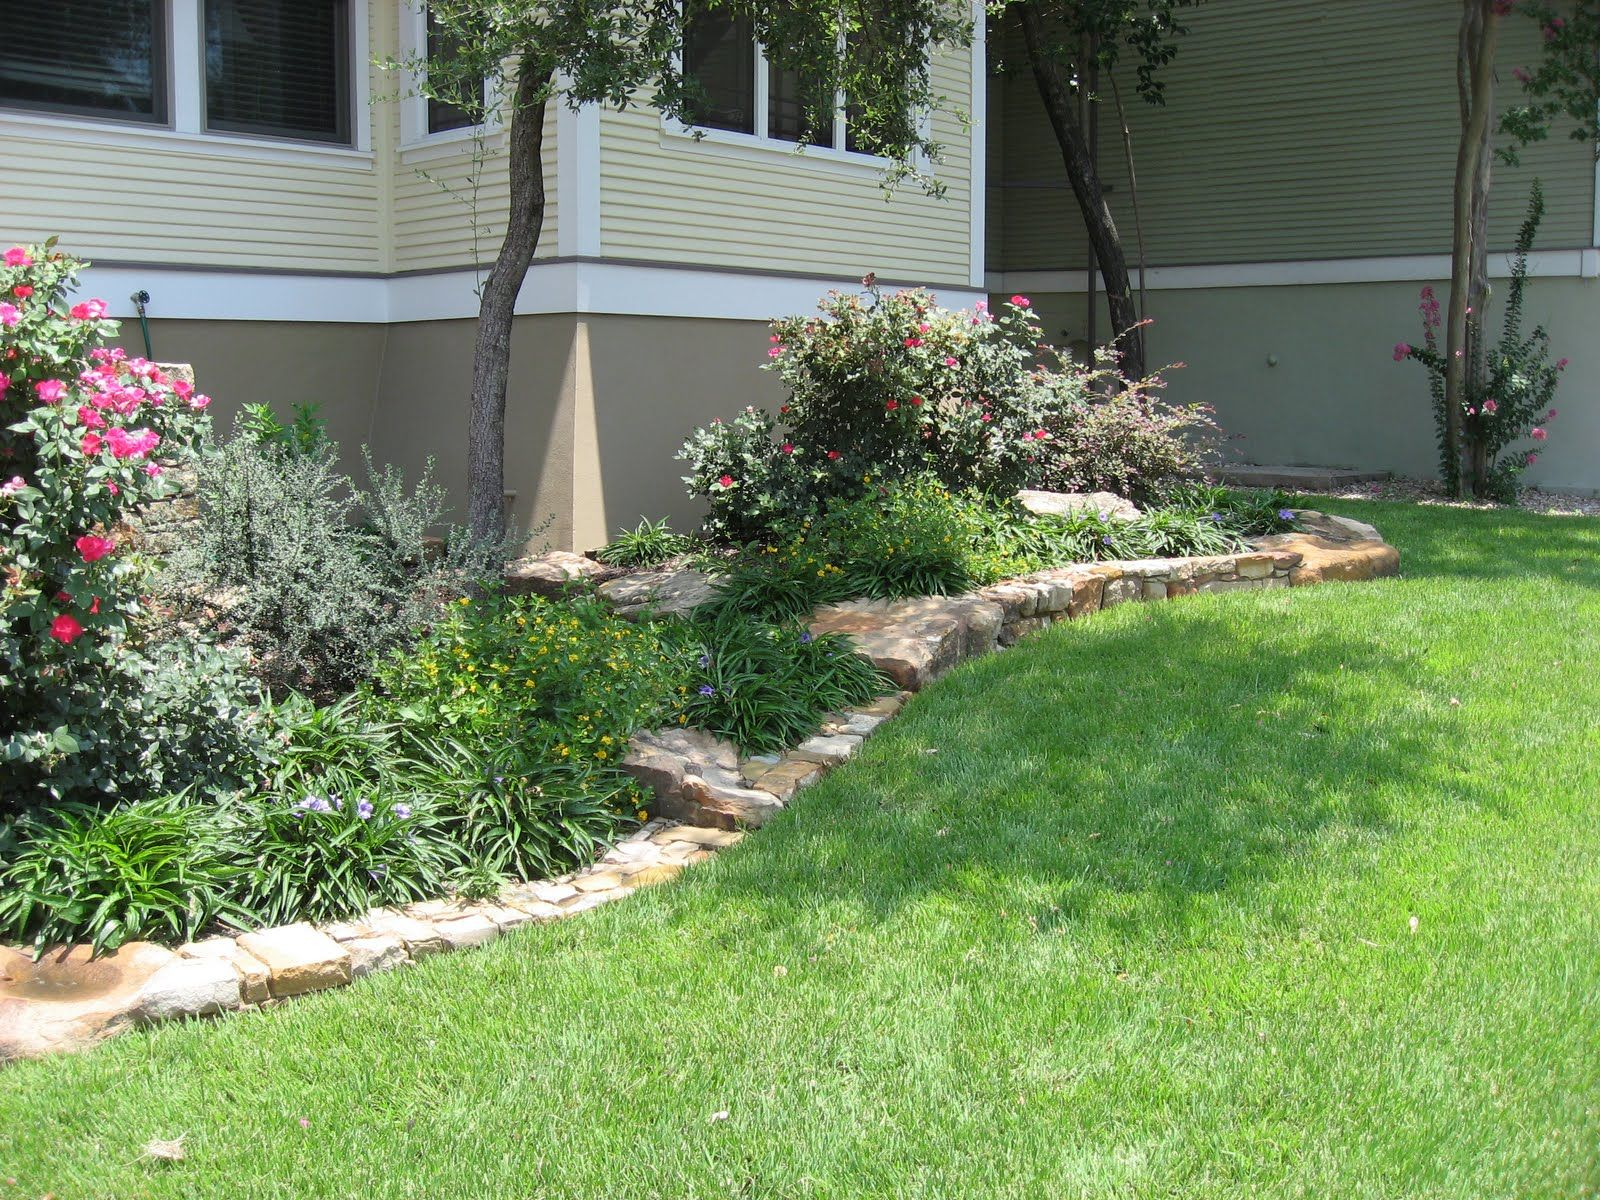 Terrific Landscape Pink Flowers Bed Edging with Stone Base Design ...